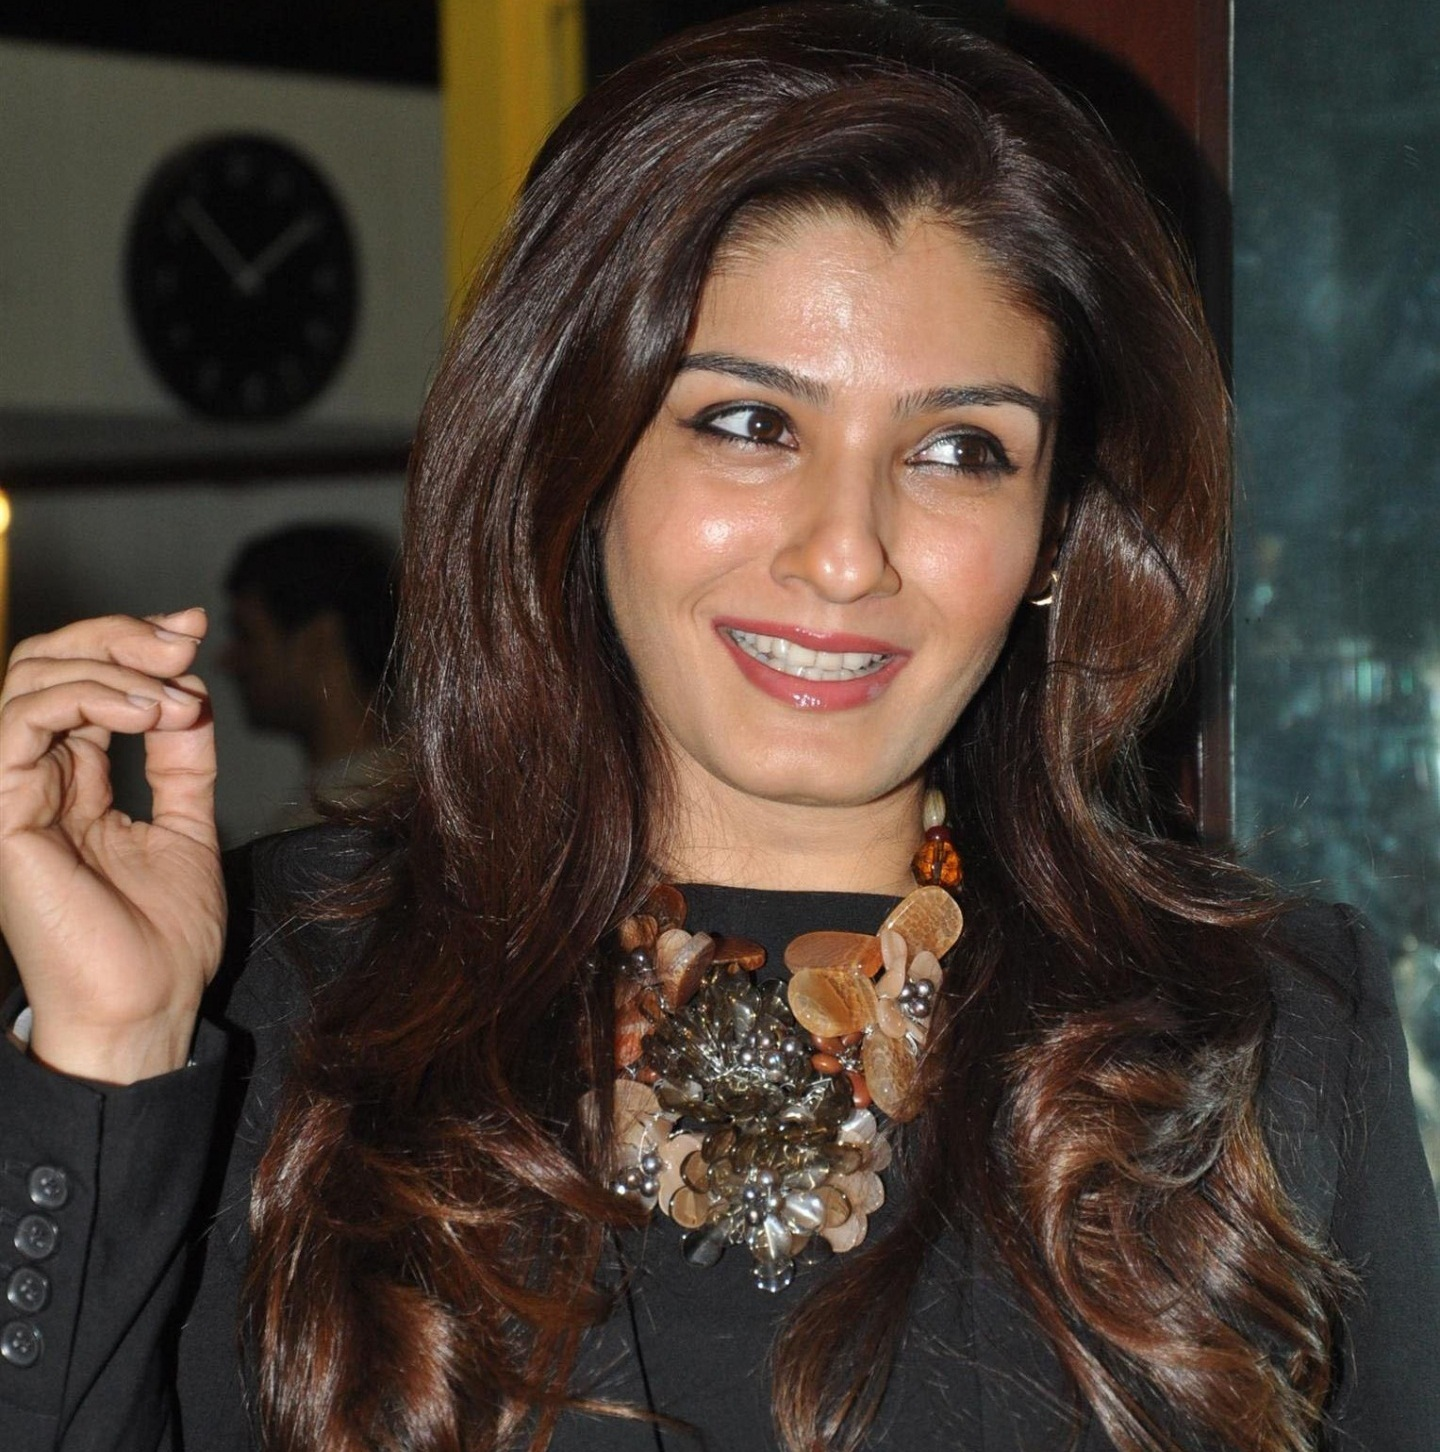 Raveena tandon fotos antiguas hd